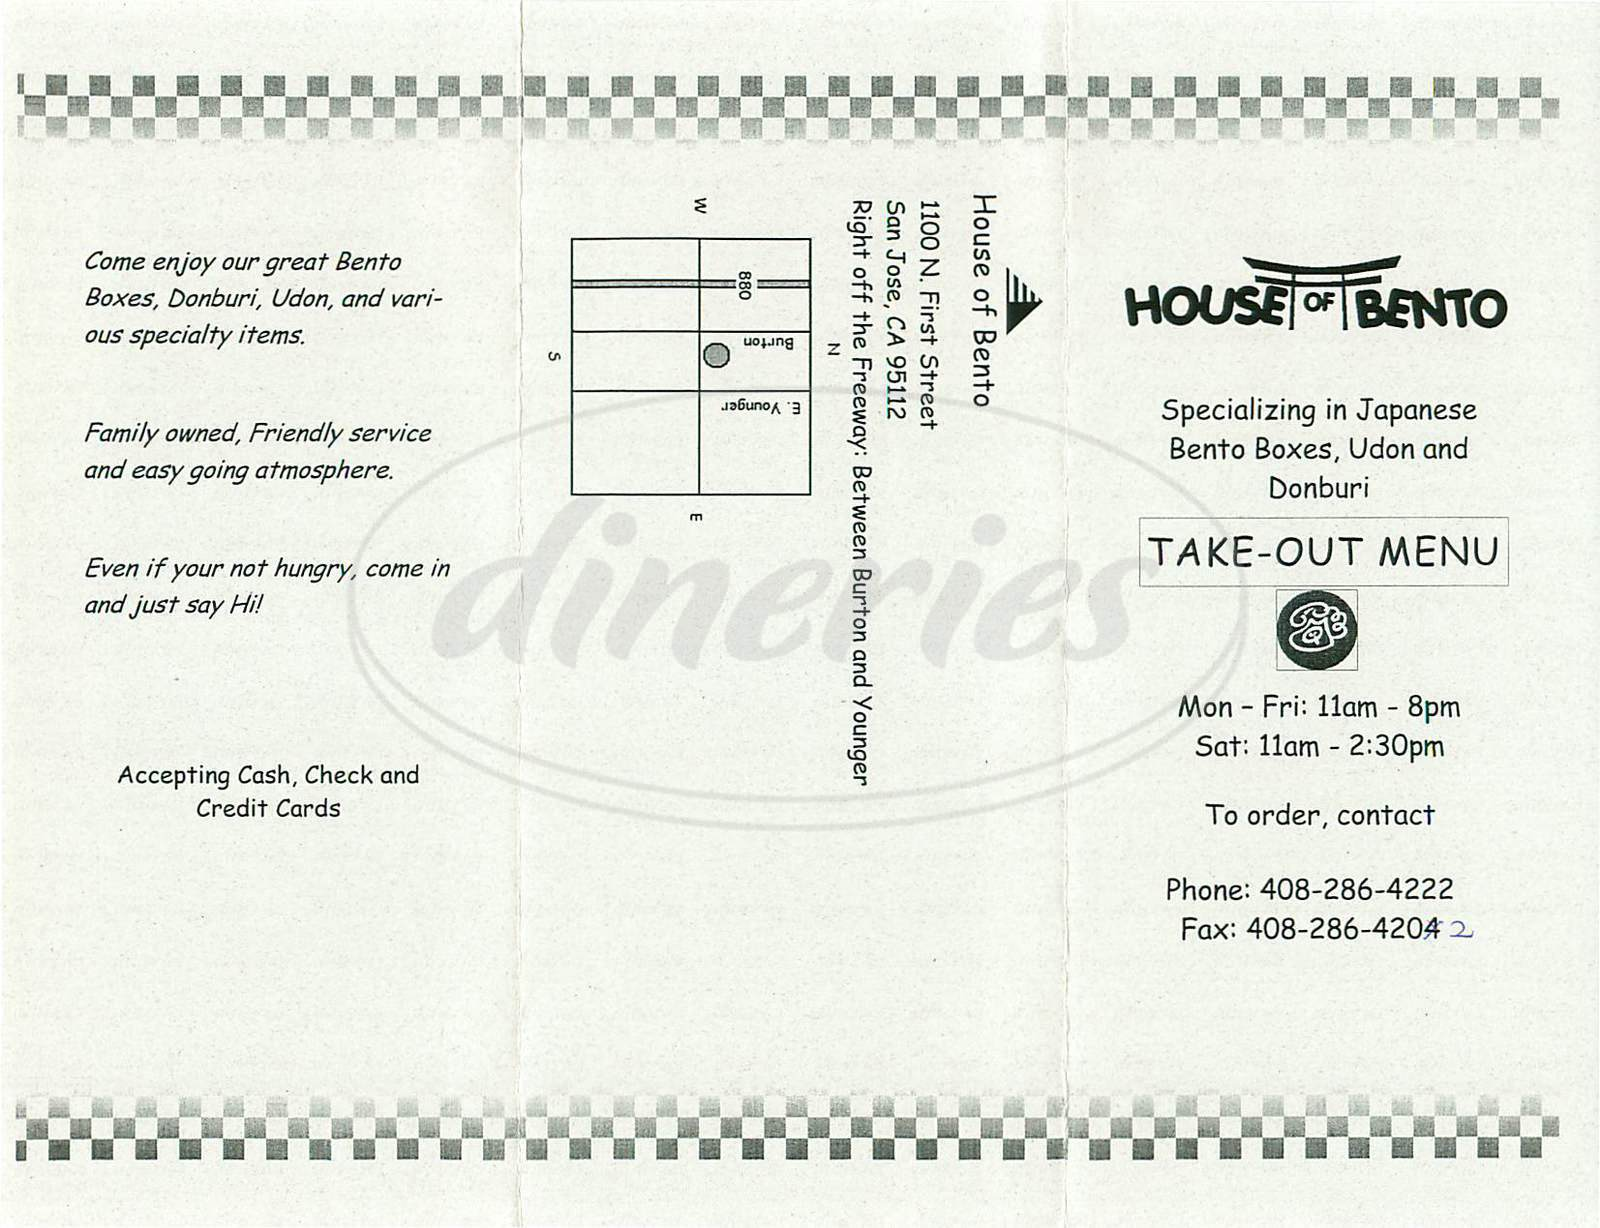 menu for House of Bento